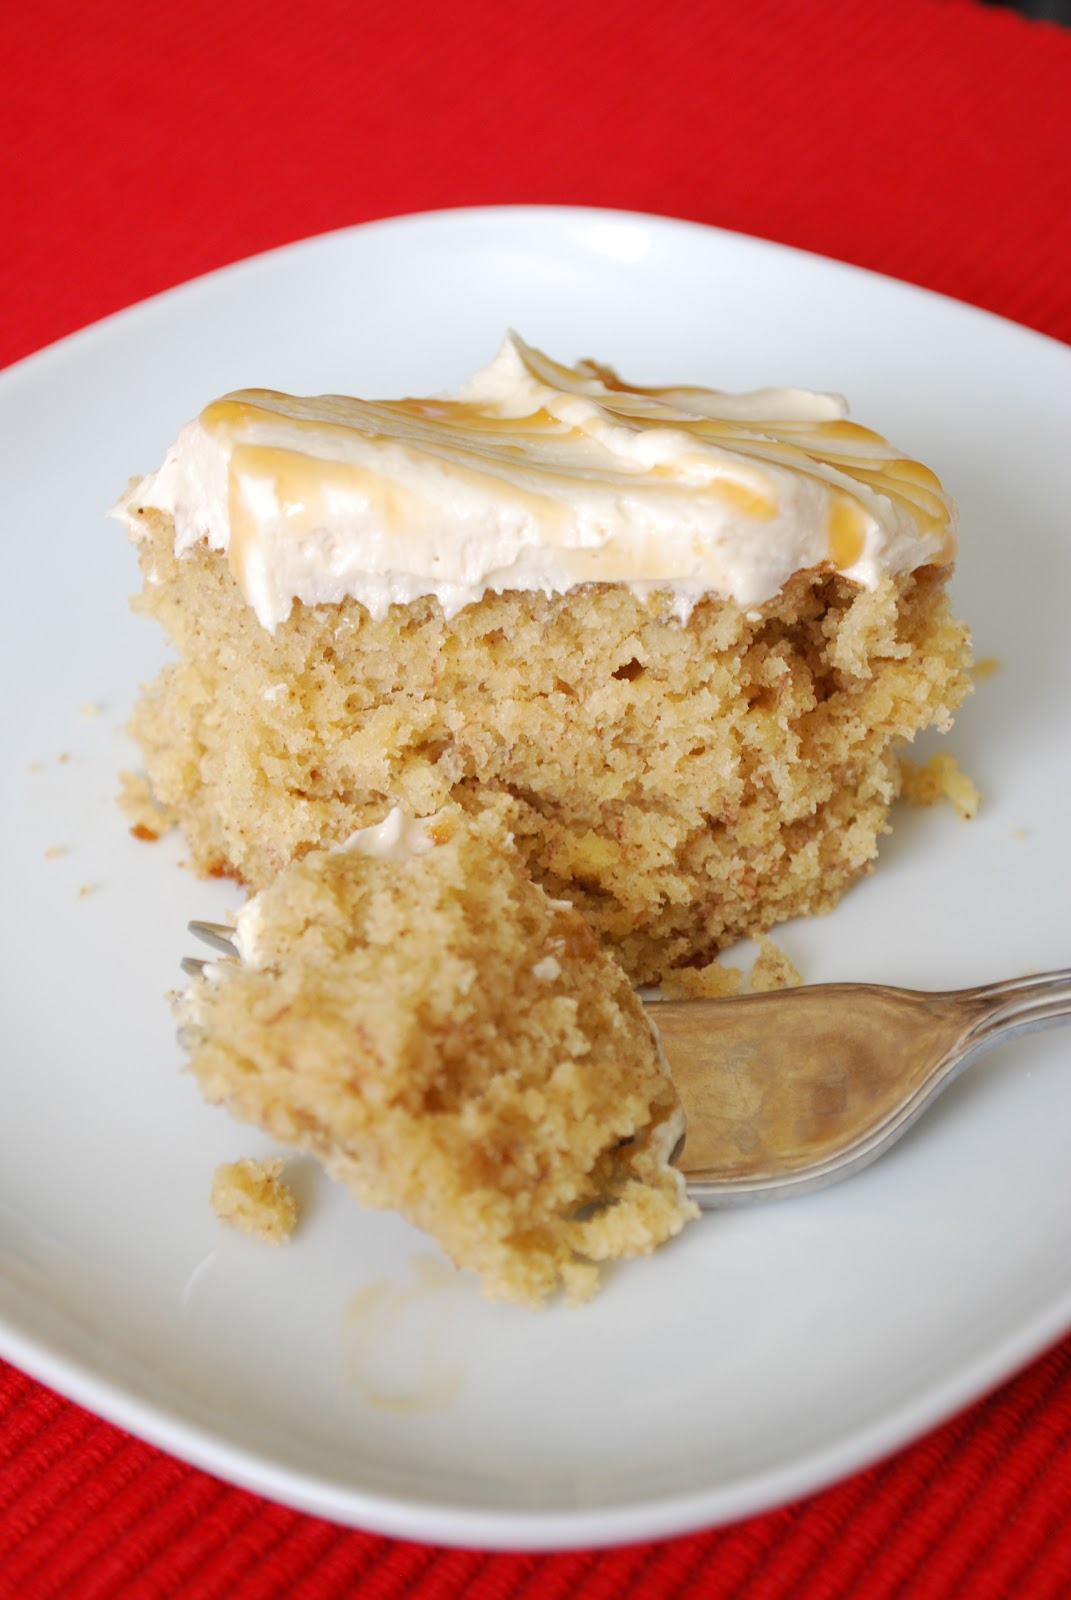 Bake.Frost.Repeat: Banana Cake with Salted Caramel Buttercream